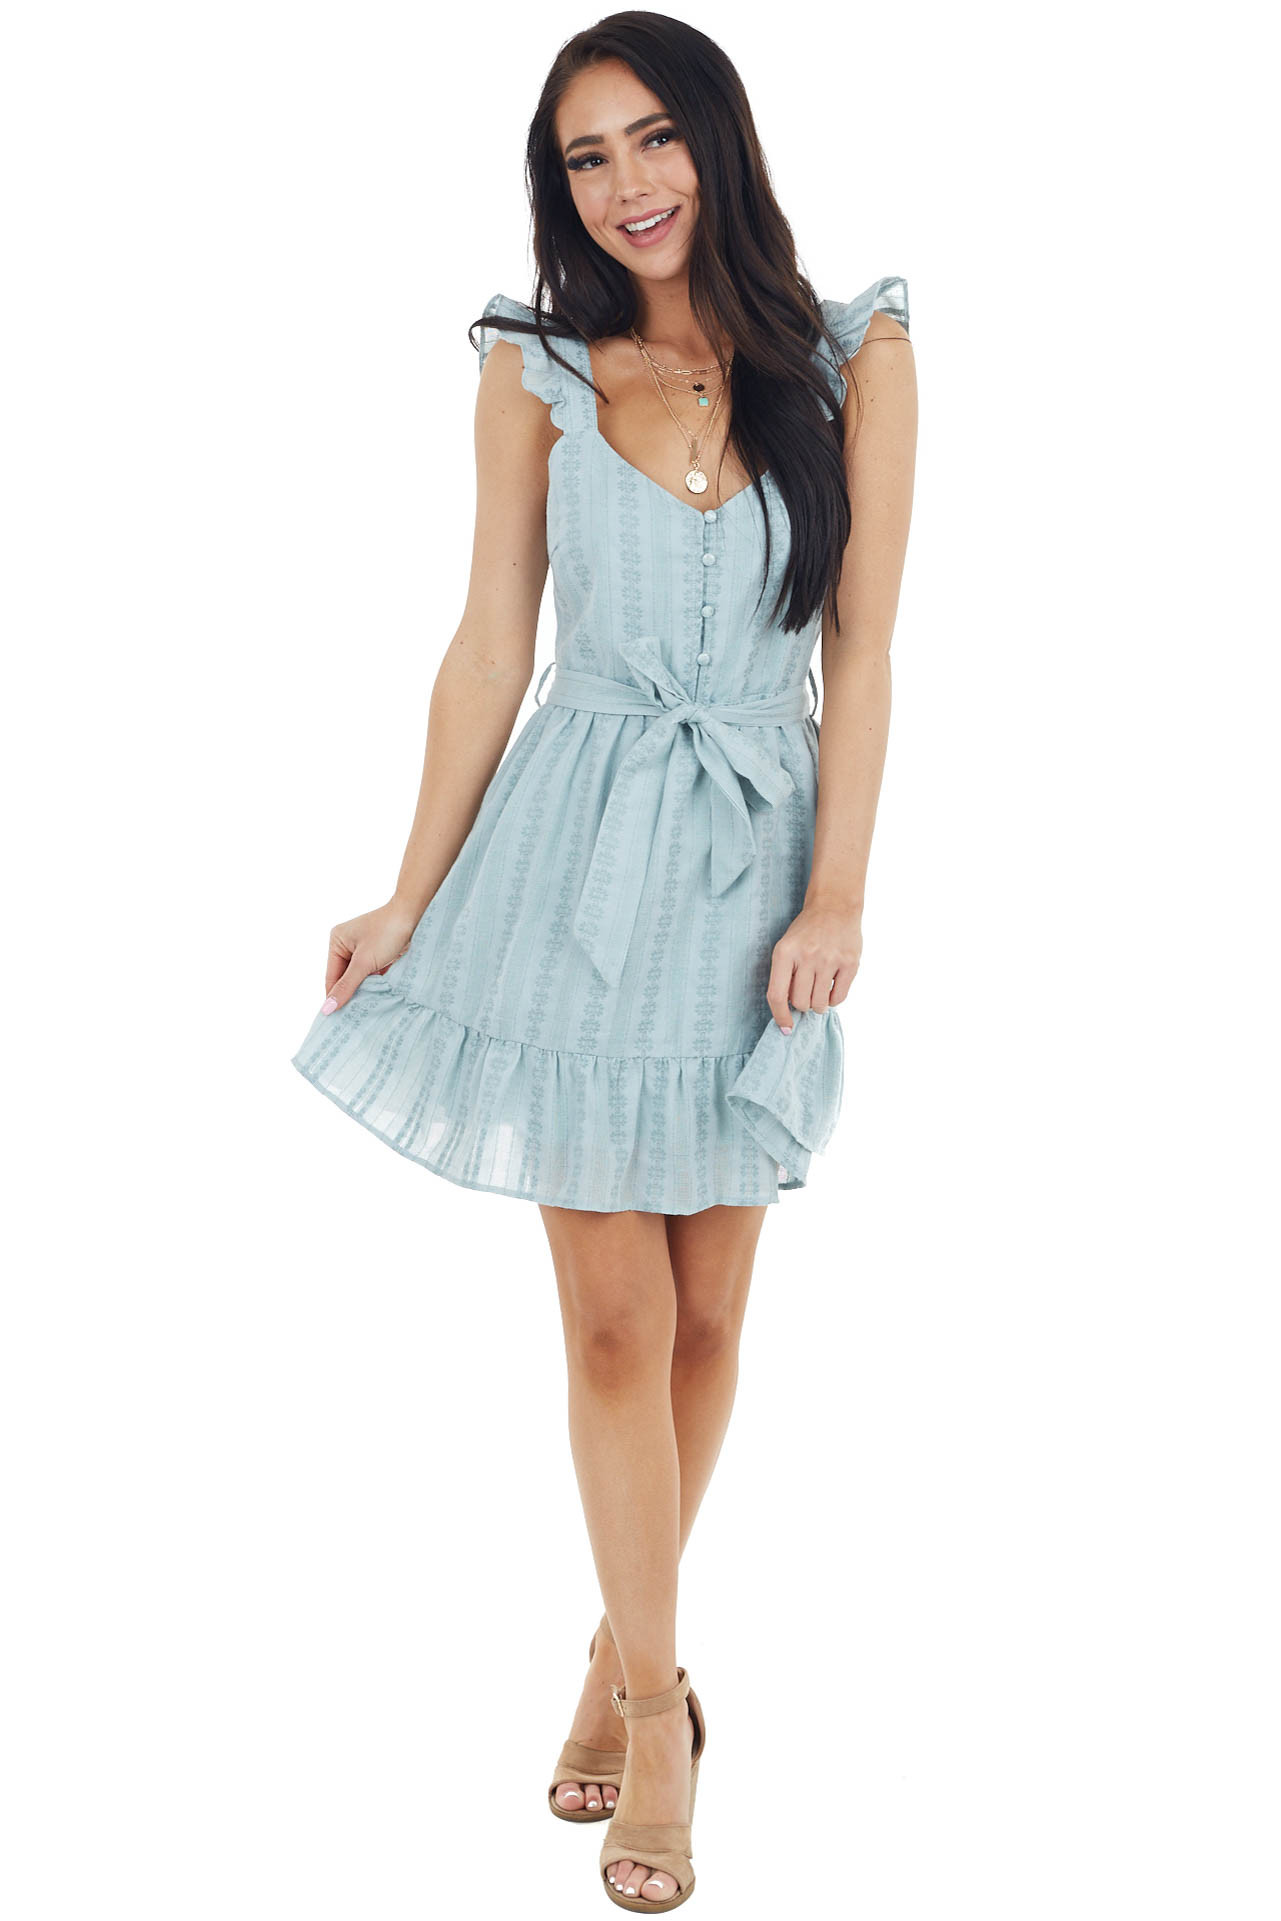 Light Blue Tiered Sleeveless Mini Dress with Thread Details